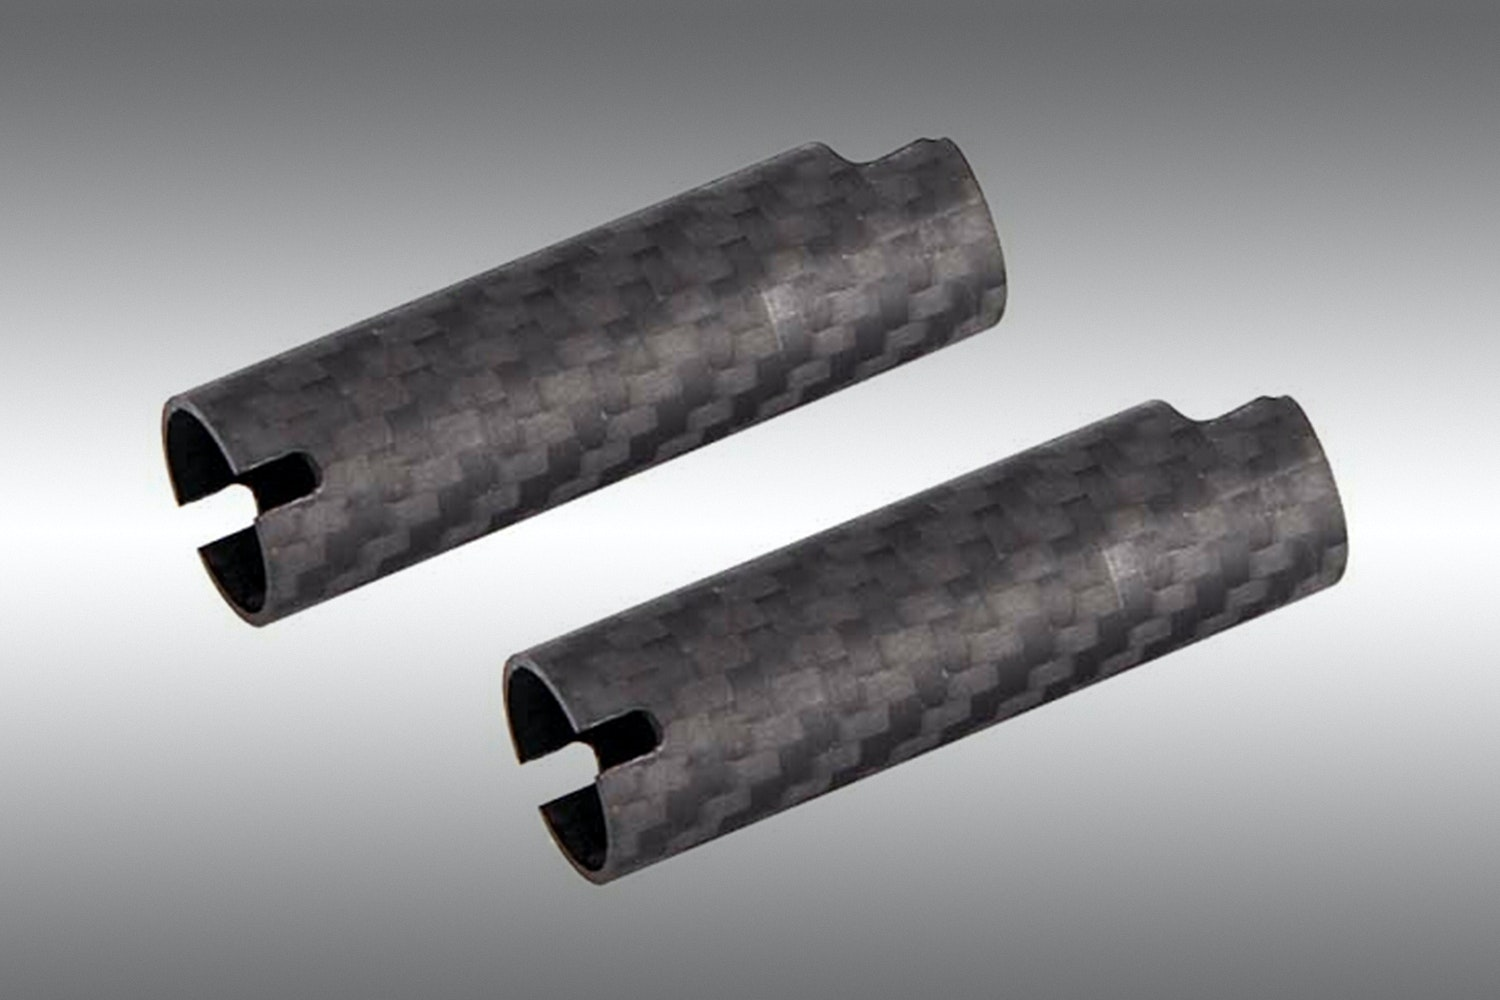 replacement carbon-fiber tube arms